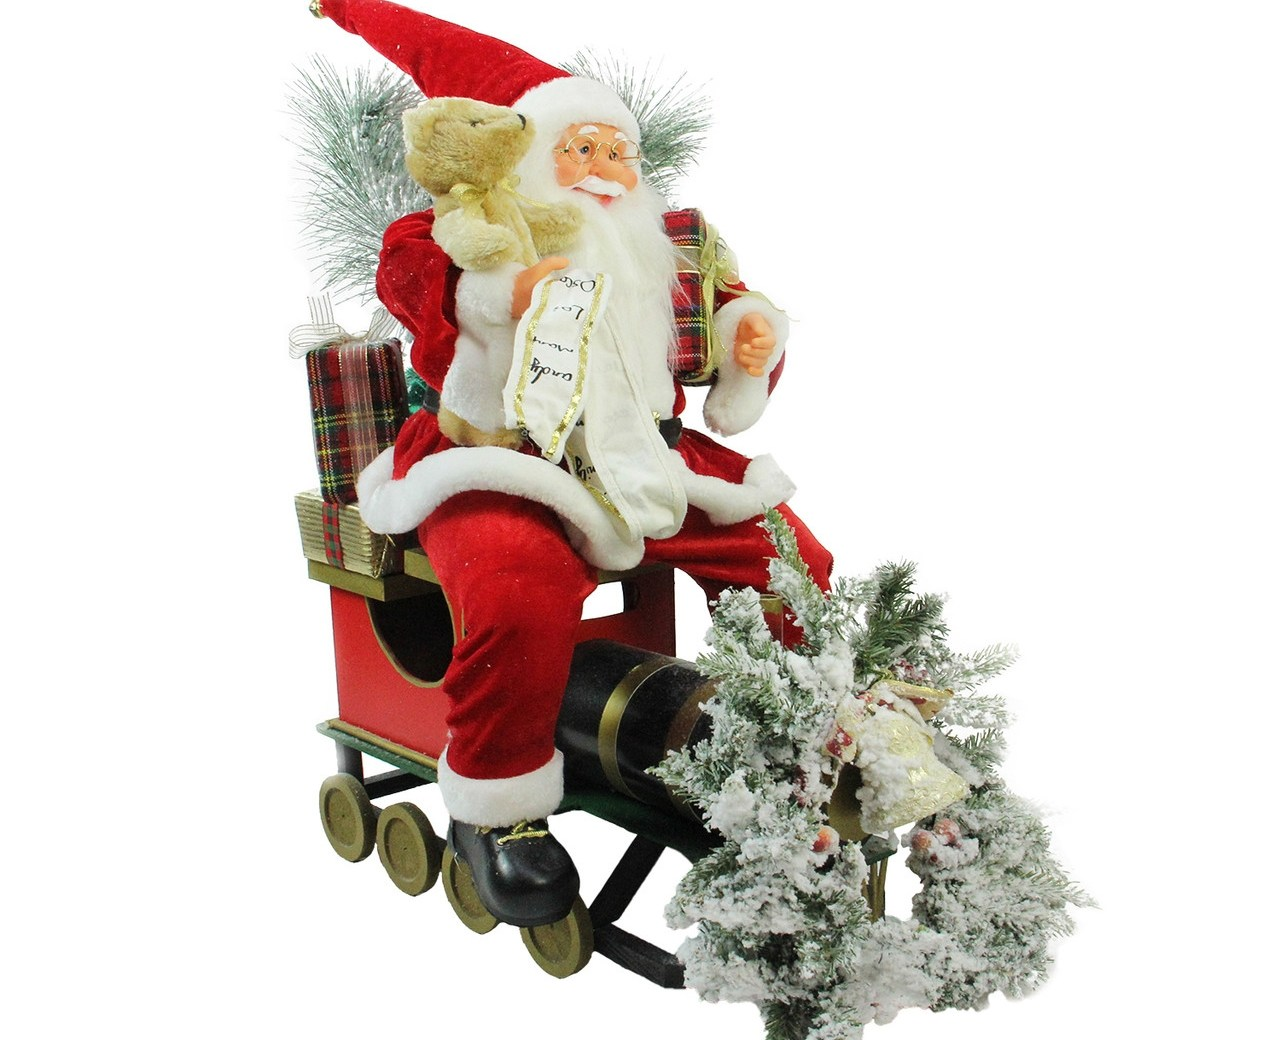 26 Red White Traditional Santa Claus Christmas Figure   Byers Choice Spiral Staircase   Stair Storage   Choice Carolers   Wooden Stairs   Inches Tall   Rolling Scaffold